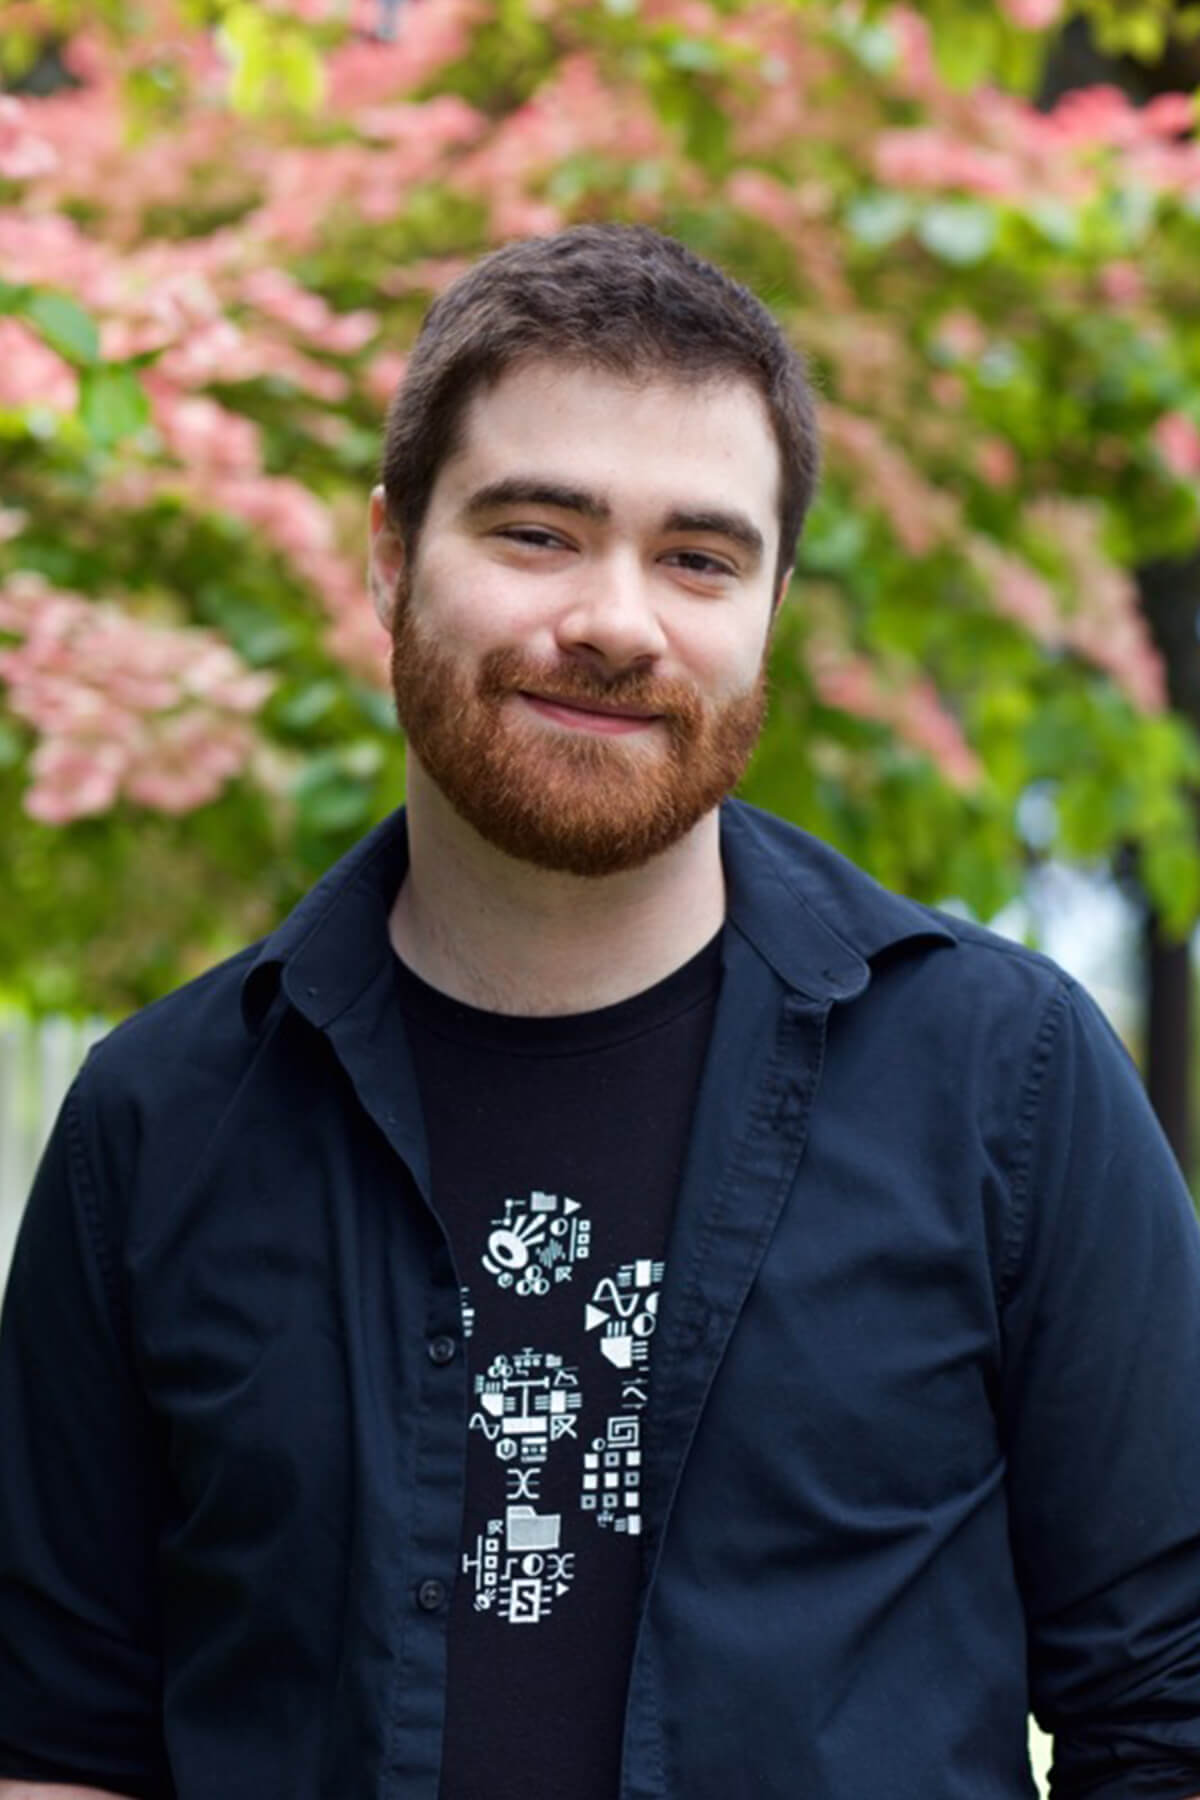 DigiPen BA in Music and Sound Design graduate and V1 Junior Sound Designer, Thomas Parrish.